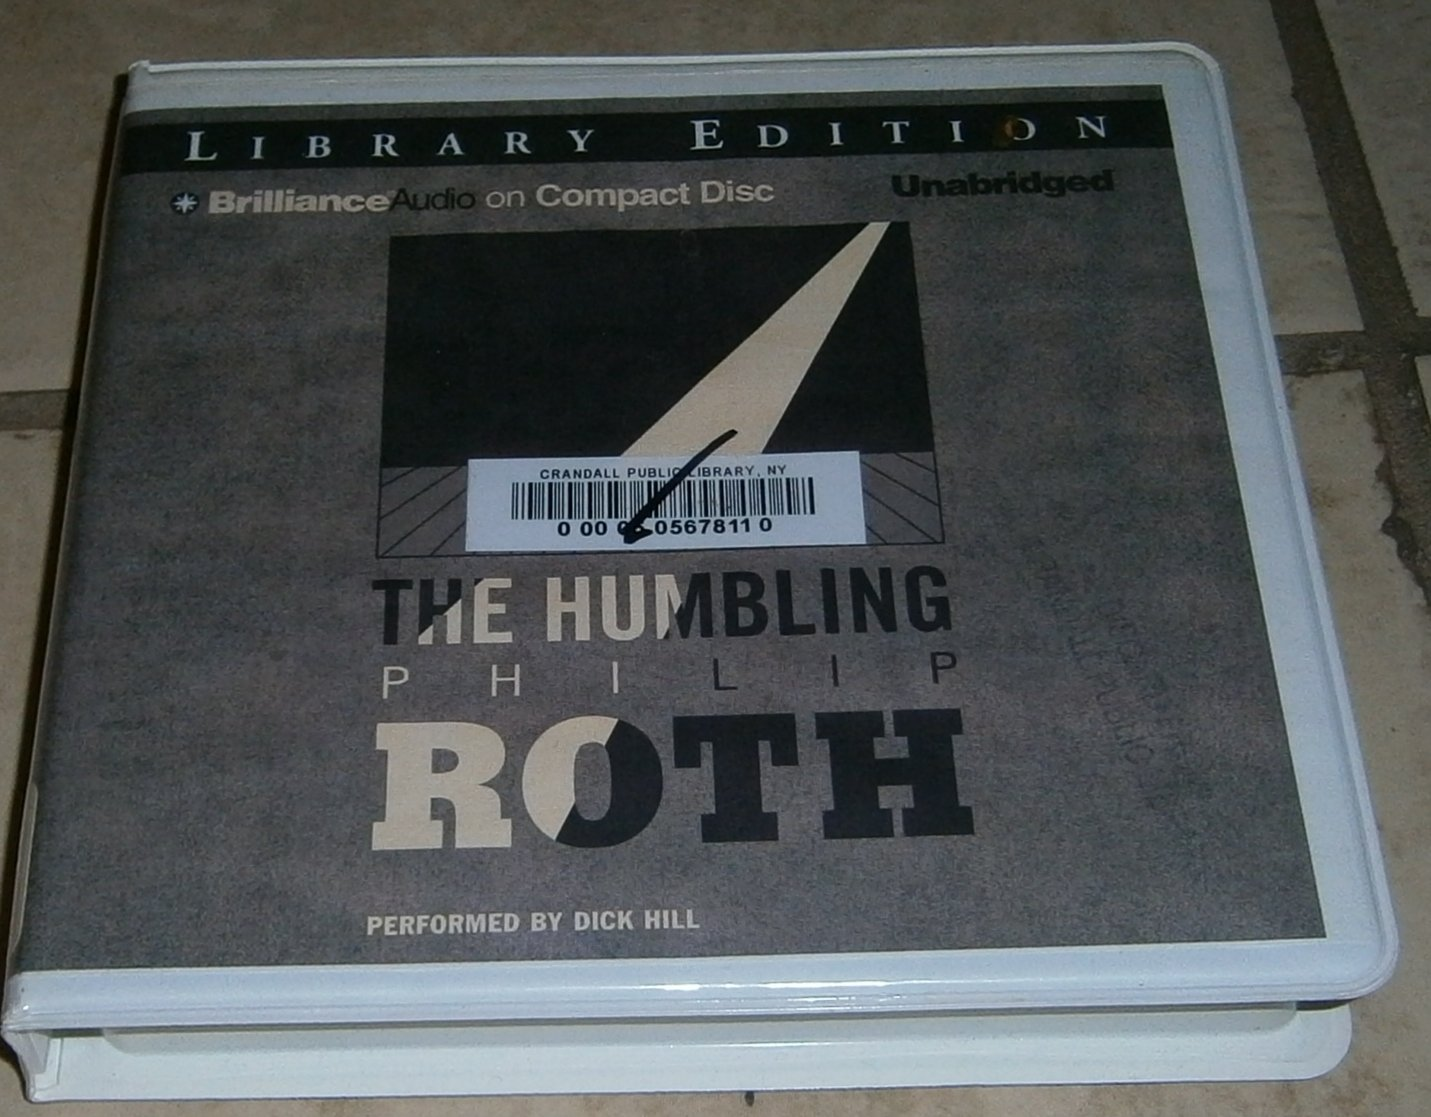 The Humbling audiobook cds Philip Roth